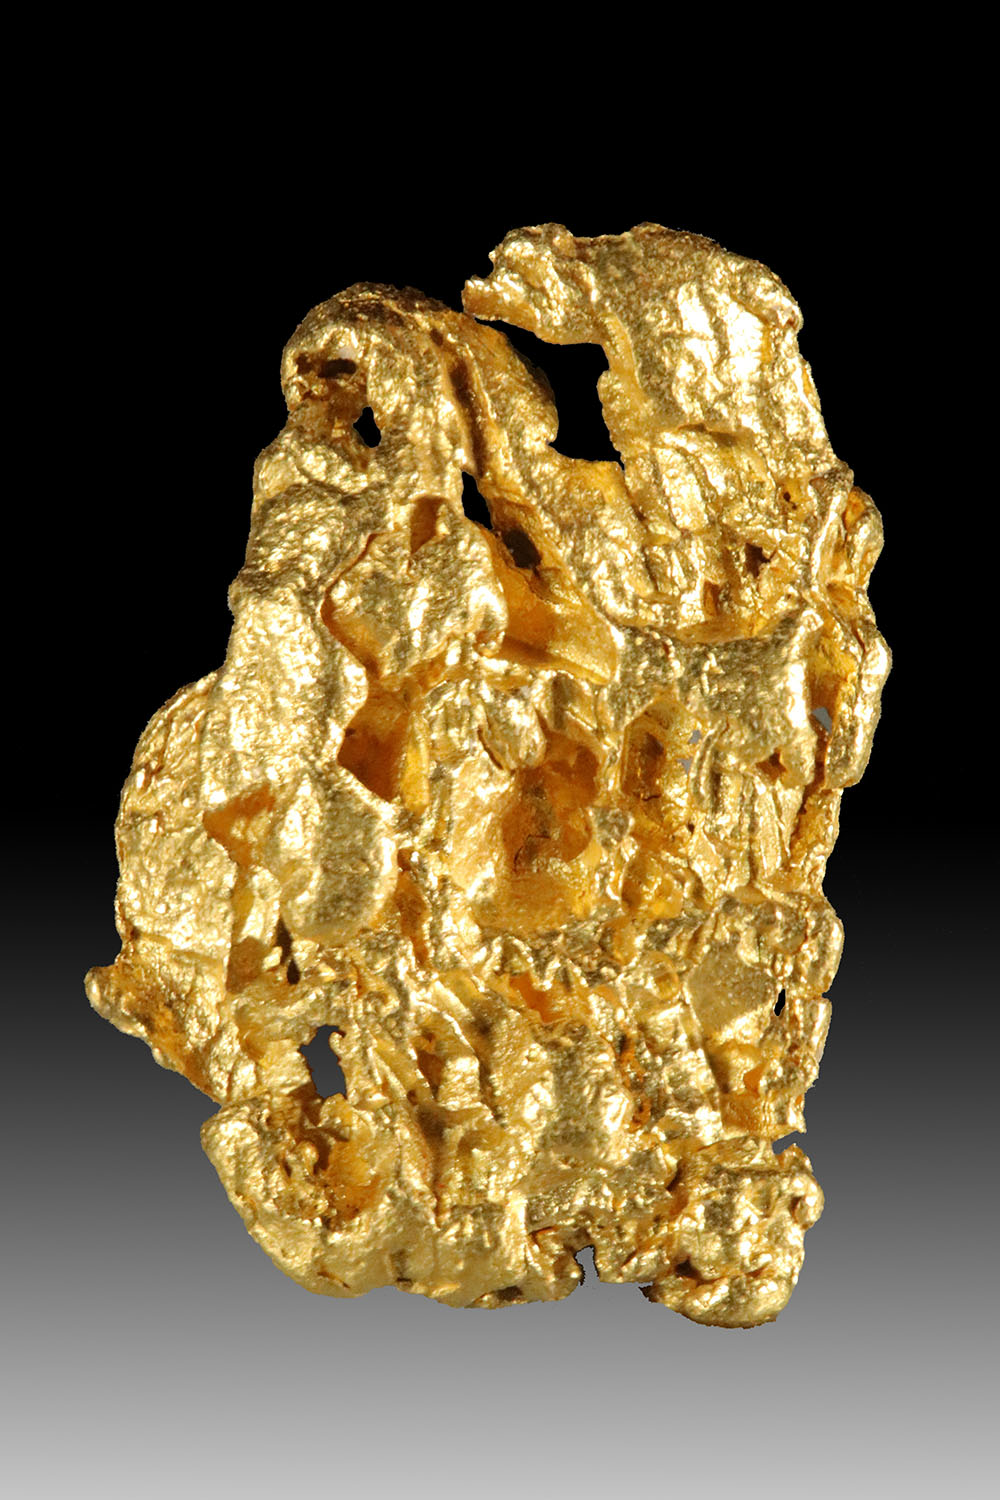 Spectacular Glowing and Cavernous Raw Australian Gold Nugget